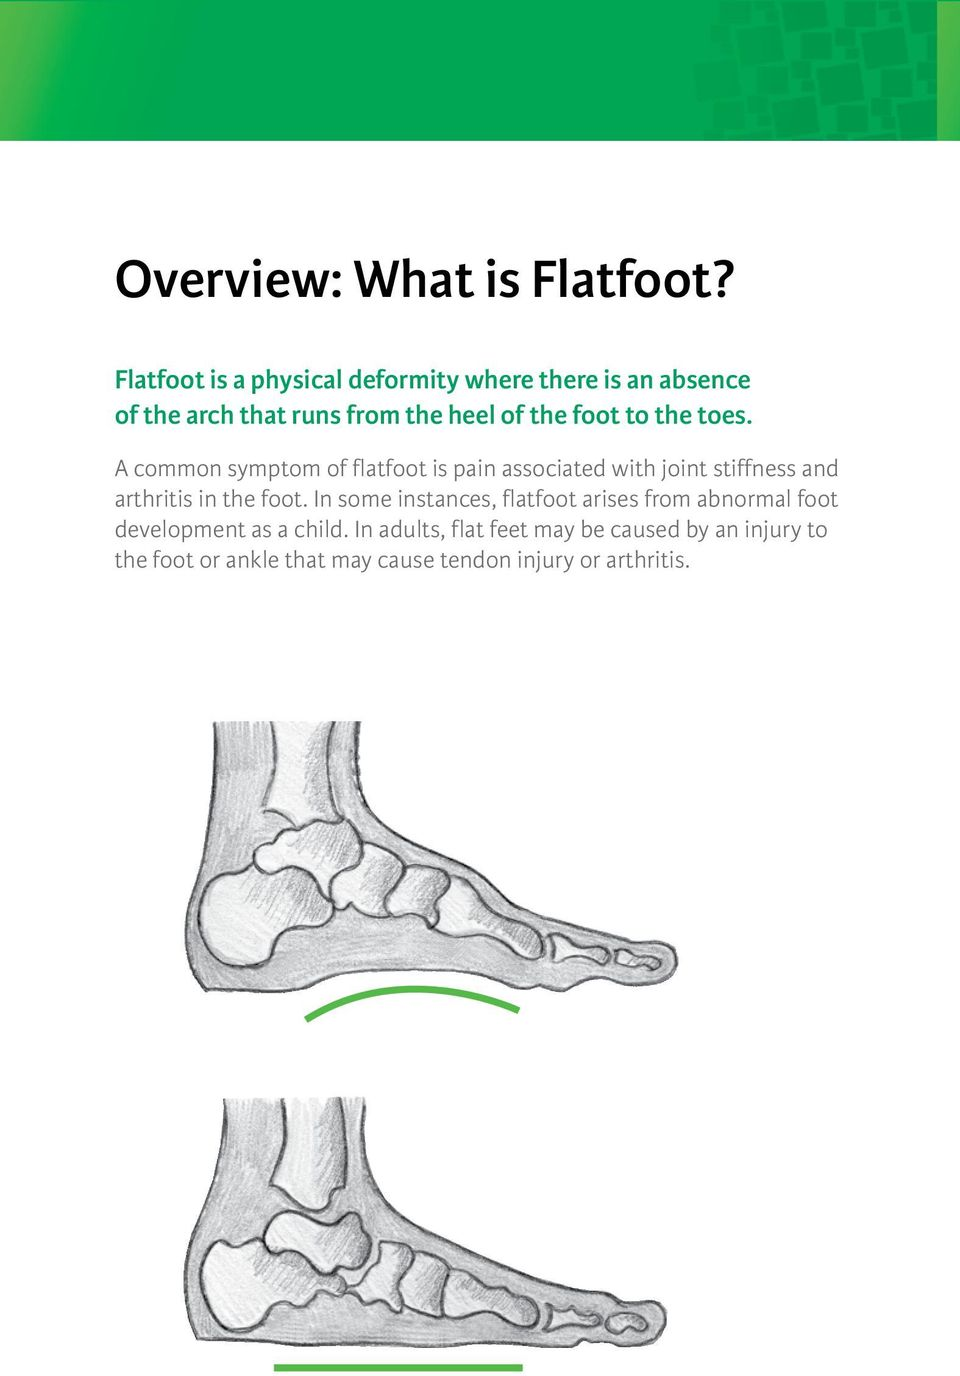 to the toes. A common symptom of flatfoot is pain associated with joint stiffness and arthritis in the foot.